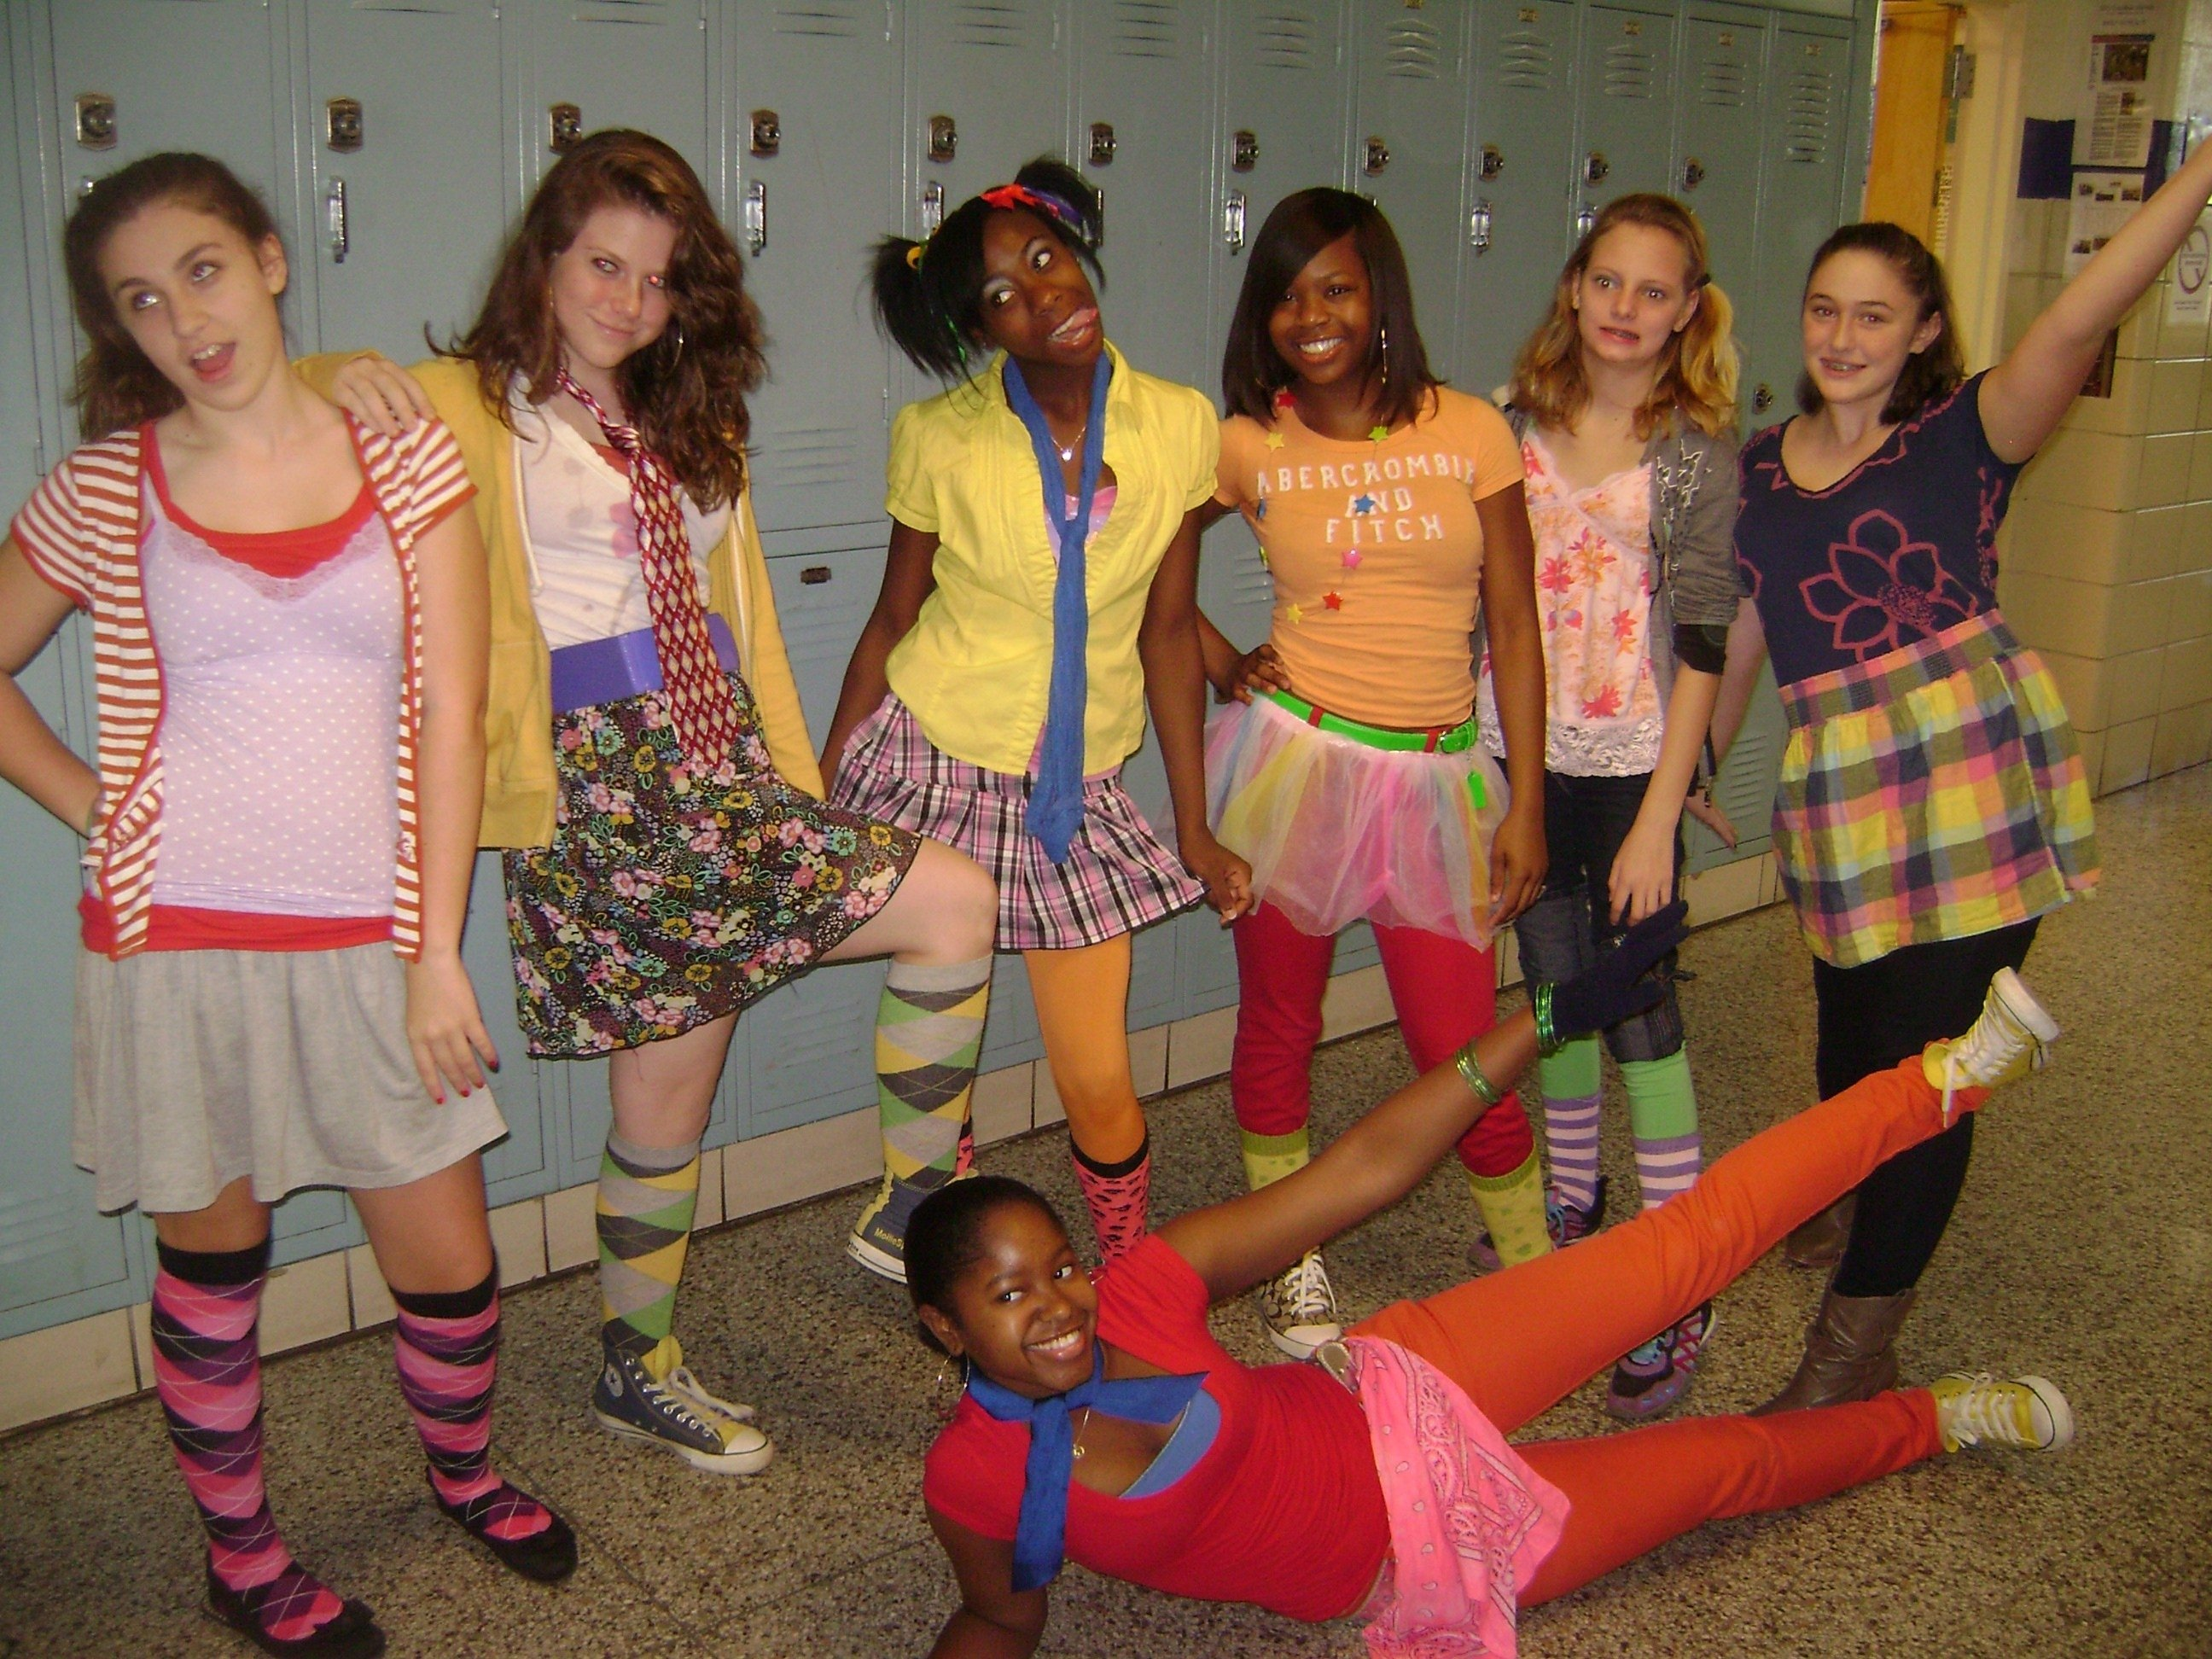 10 Attractive Ideas For Wacky Tacky Day dhs students get tacky for homecoming decatur metro local news 2020